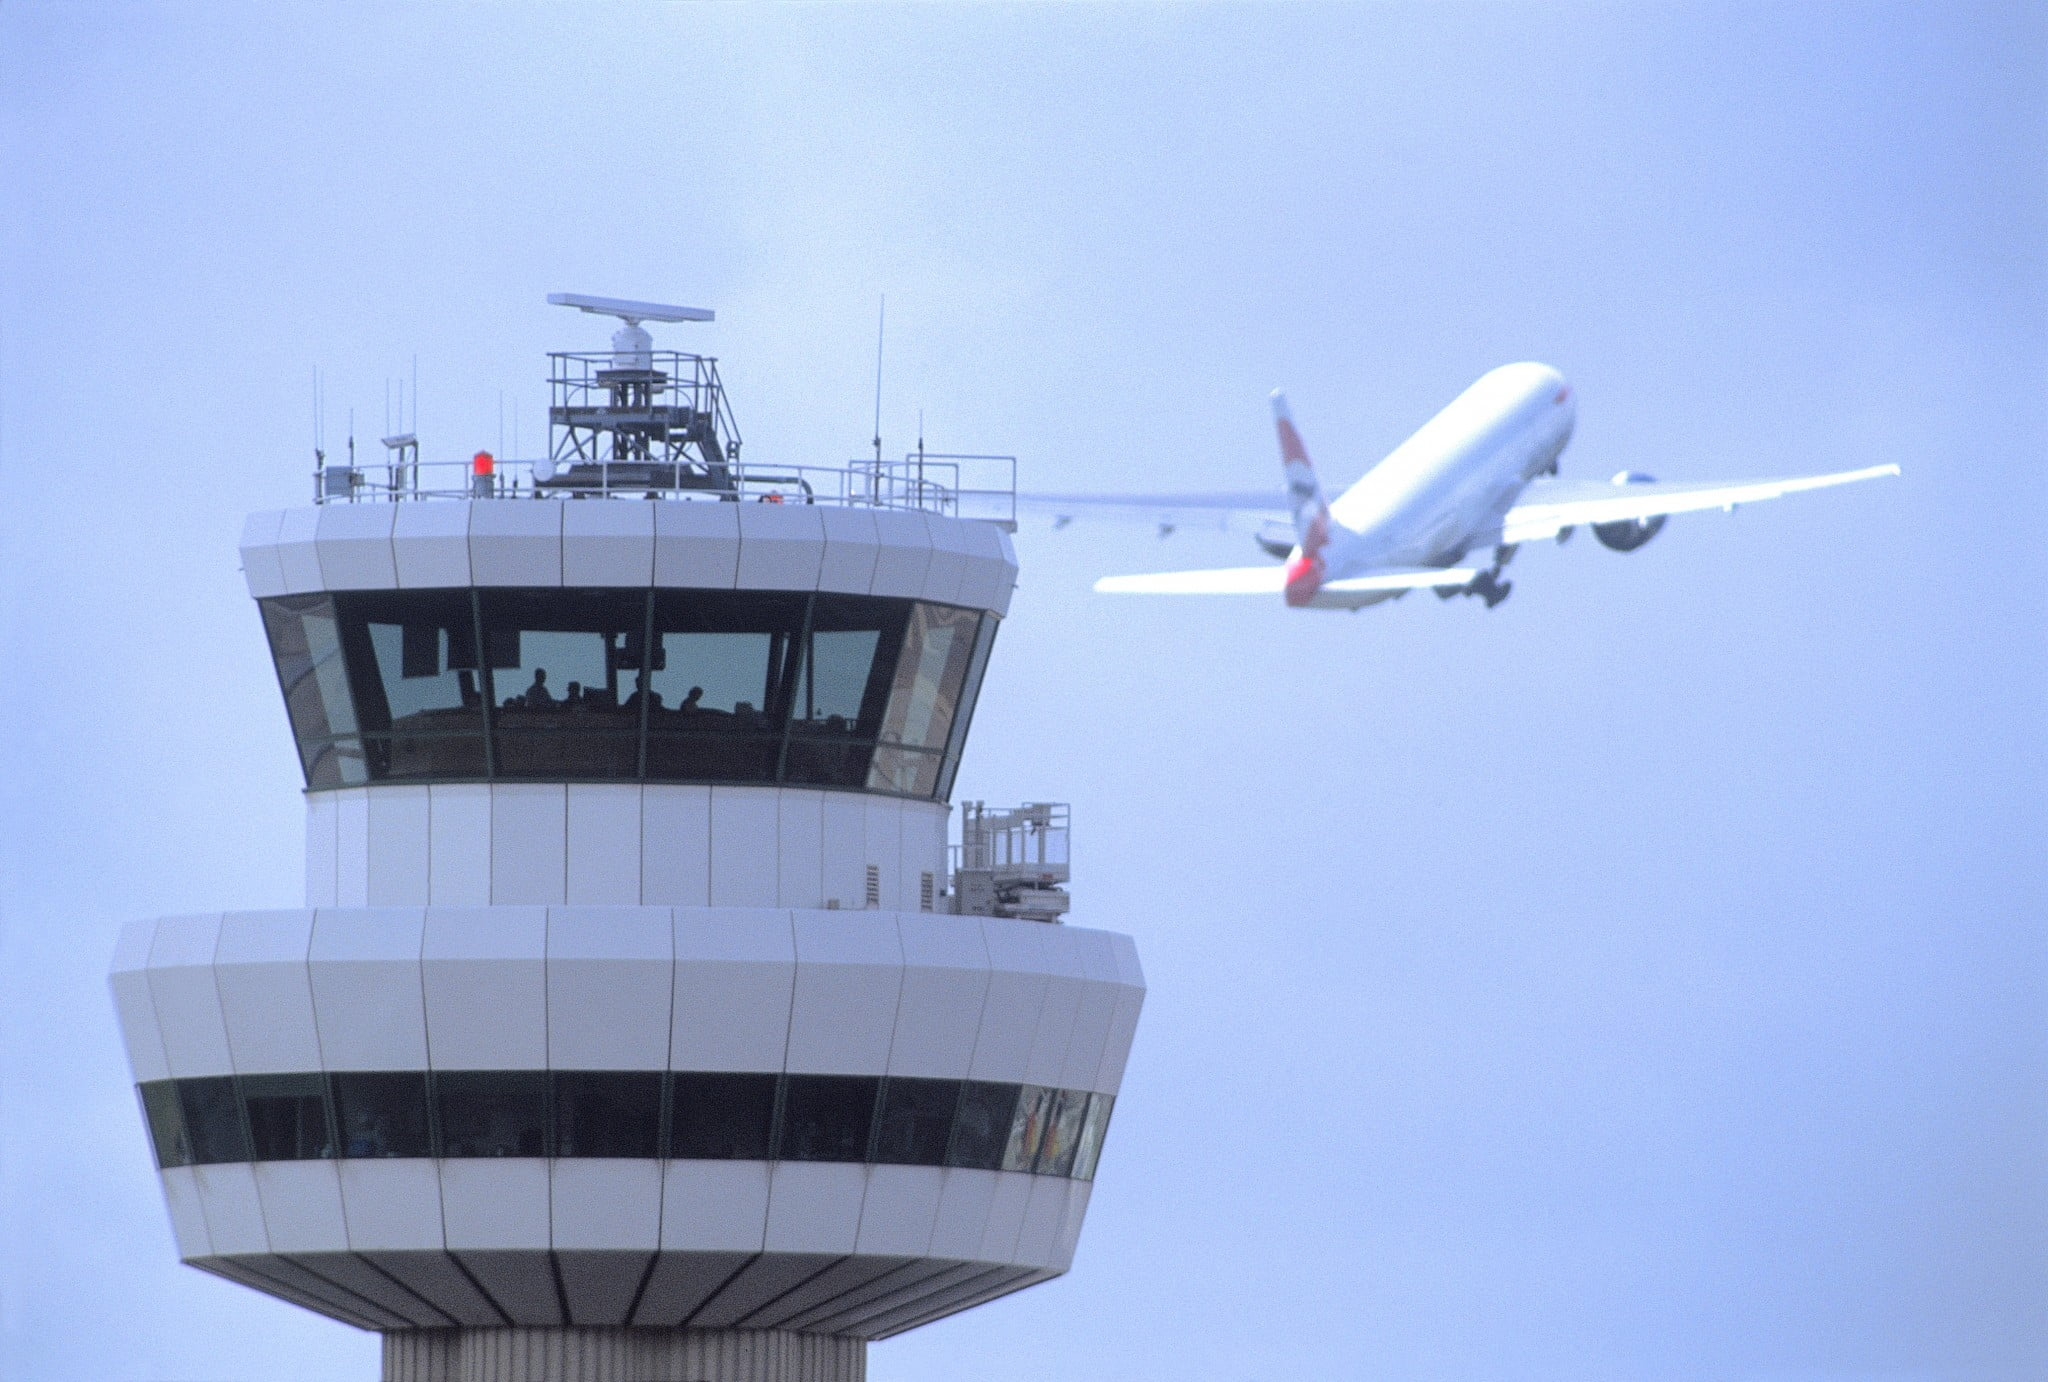 Gatwick Airport, Control tower with aircraft in flight in background, DP, 19 August 2004, (CGA857)